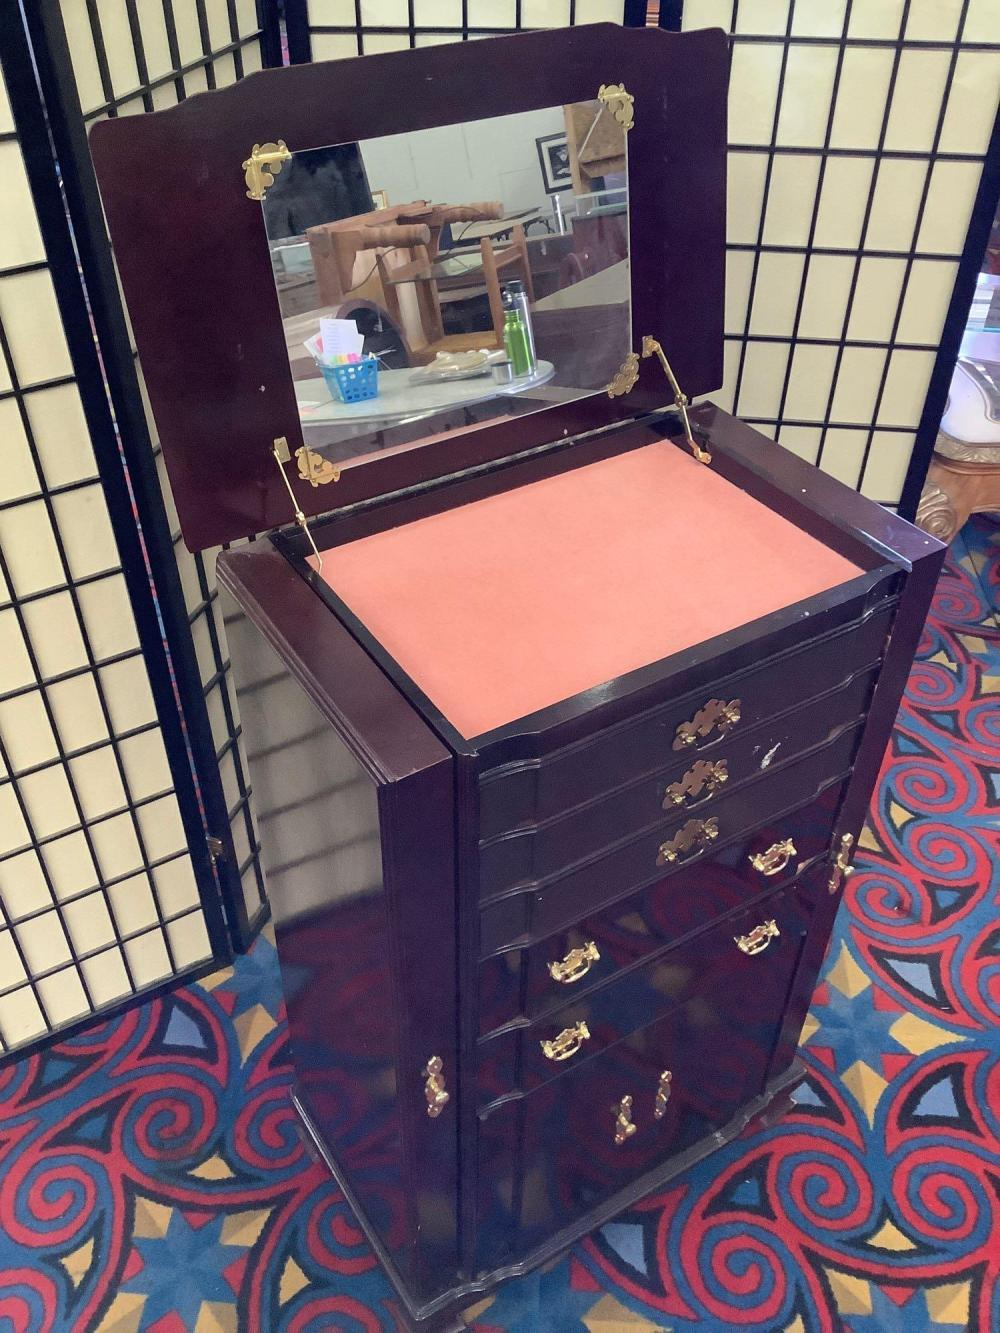 Lot 41: Powell Furniture Upright jewelry cabinet w/ side doors, 5 drawers & lower cabinet missing a pull